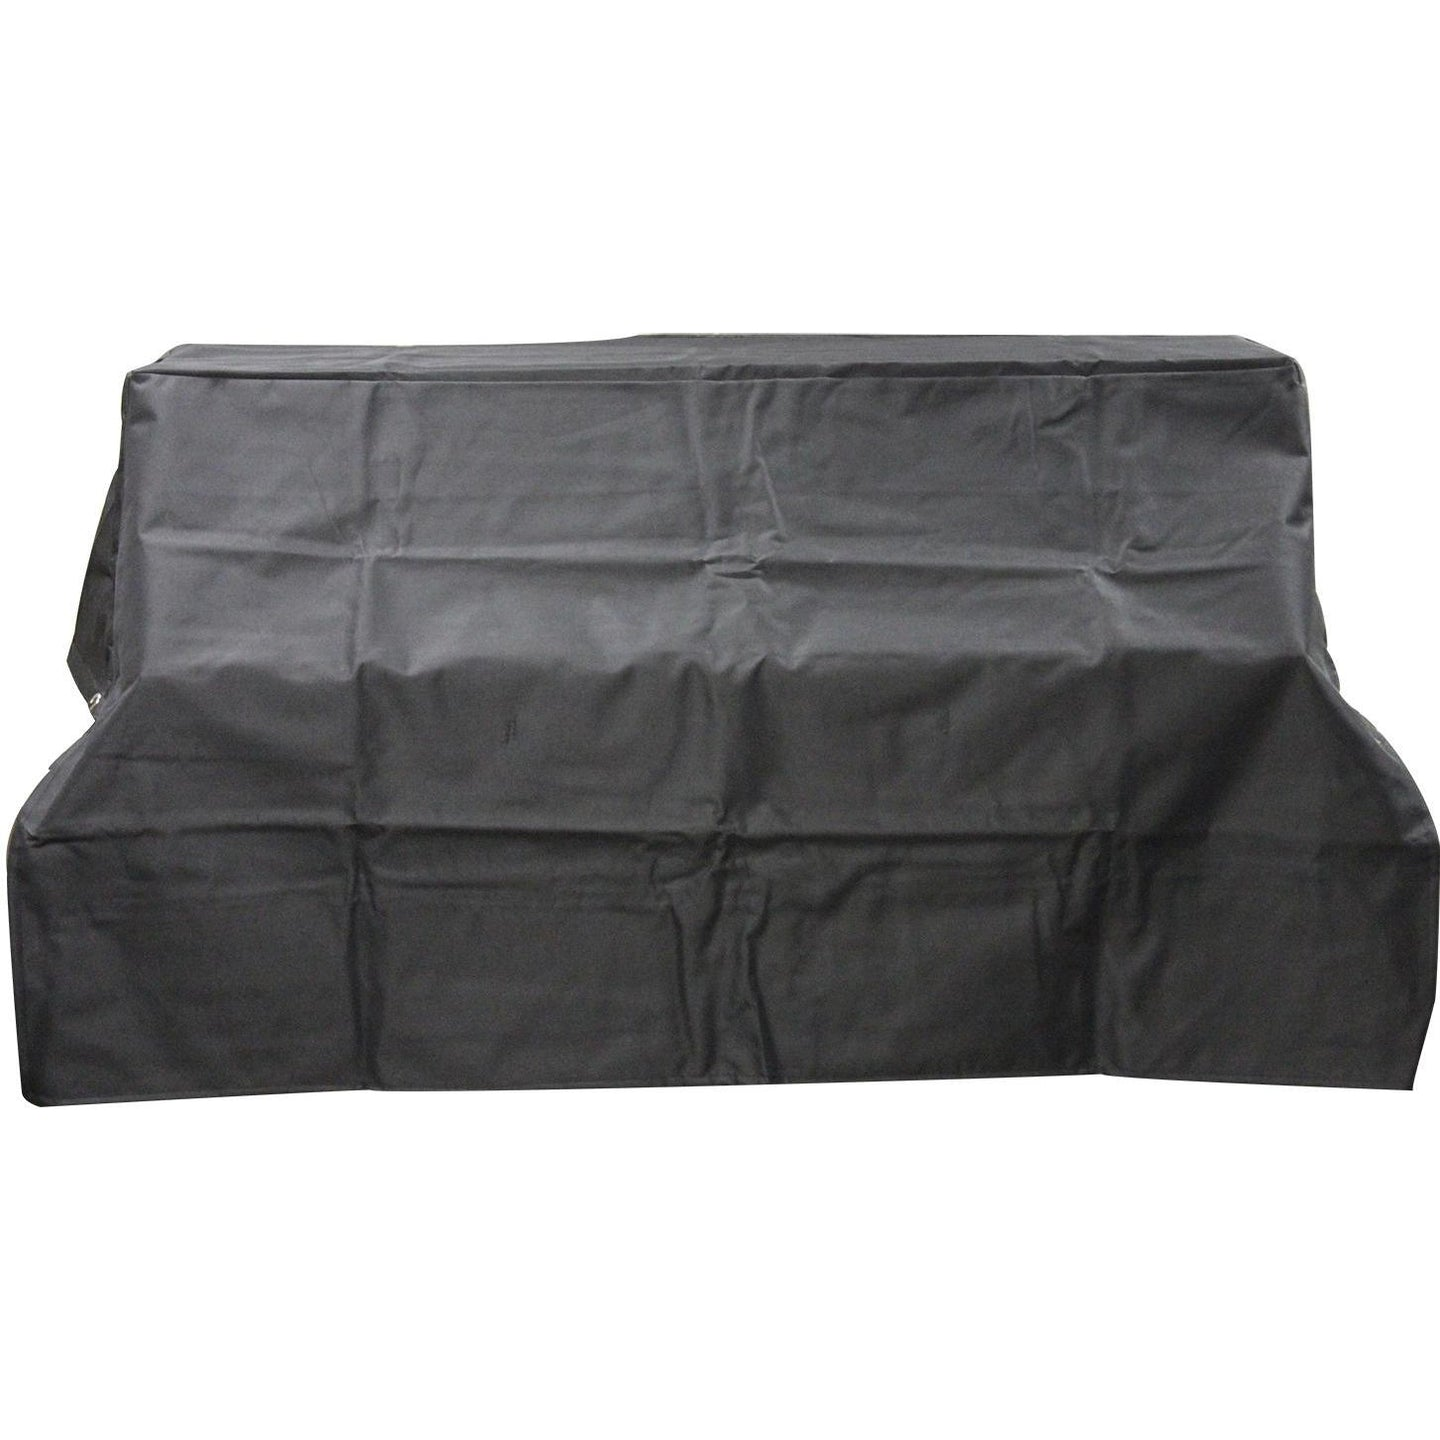 Summerset Deluxe Grill Cover For 30-Inch Alturi Built-In Gas Grills